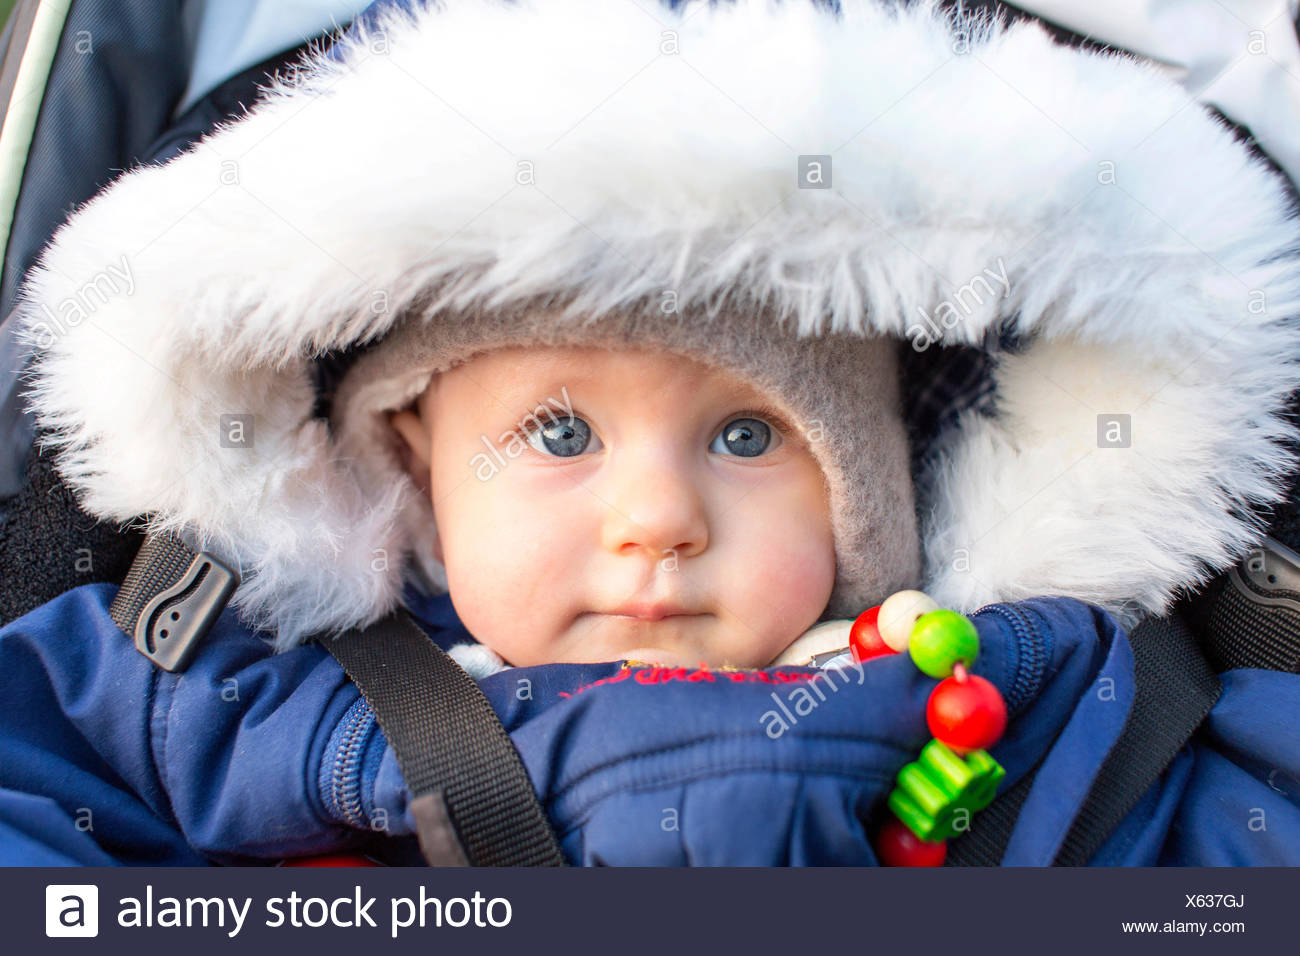 Baby, 9 months, wearing a thick jacket - Stock Image